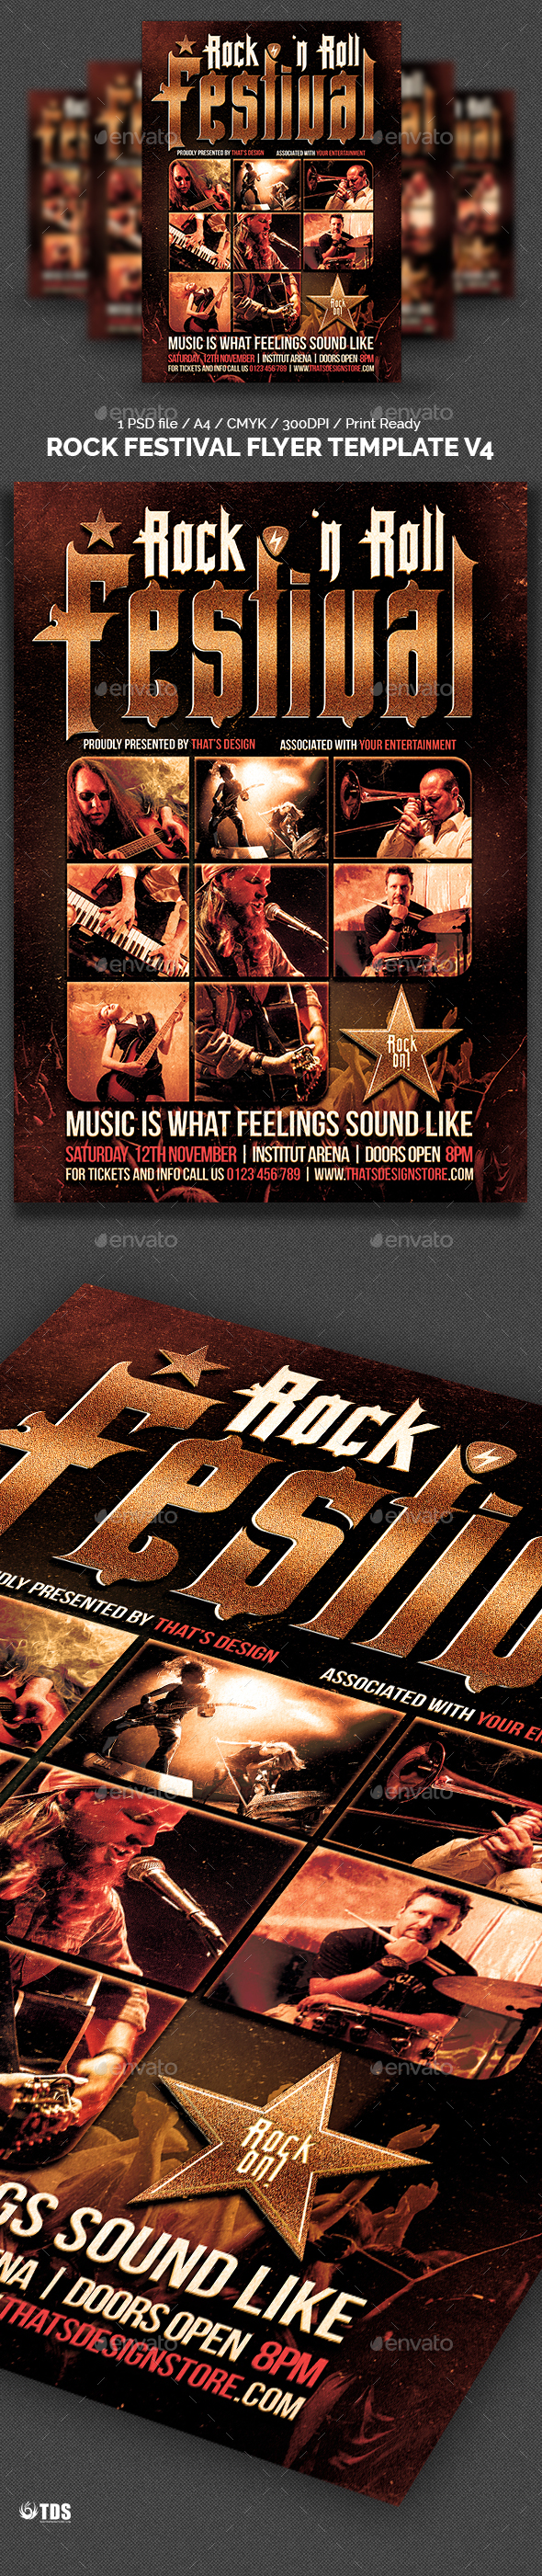 Rock Festival Flyer Template V4 - Concerts Events